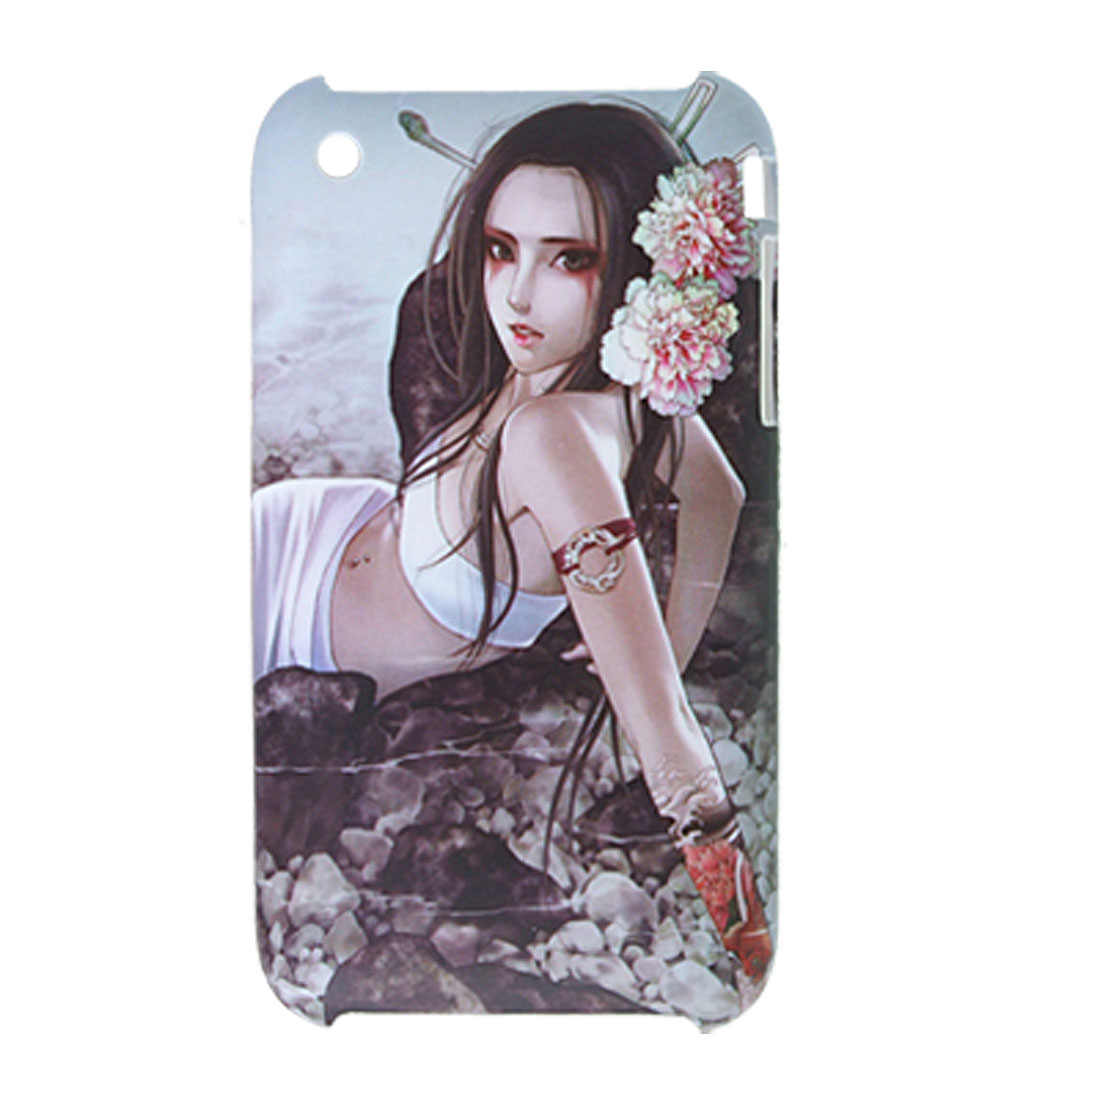 Girl w Peony Rubberized Hard Plastic Case for iPhone 3G